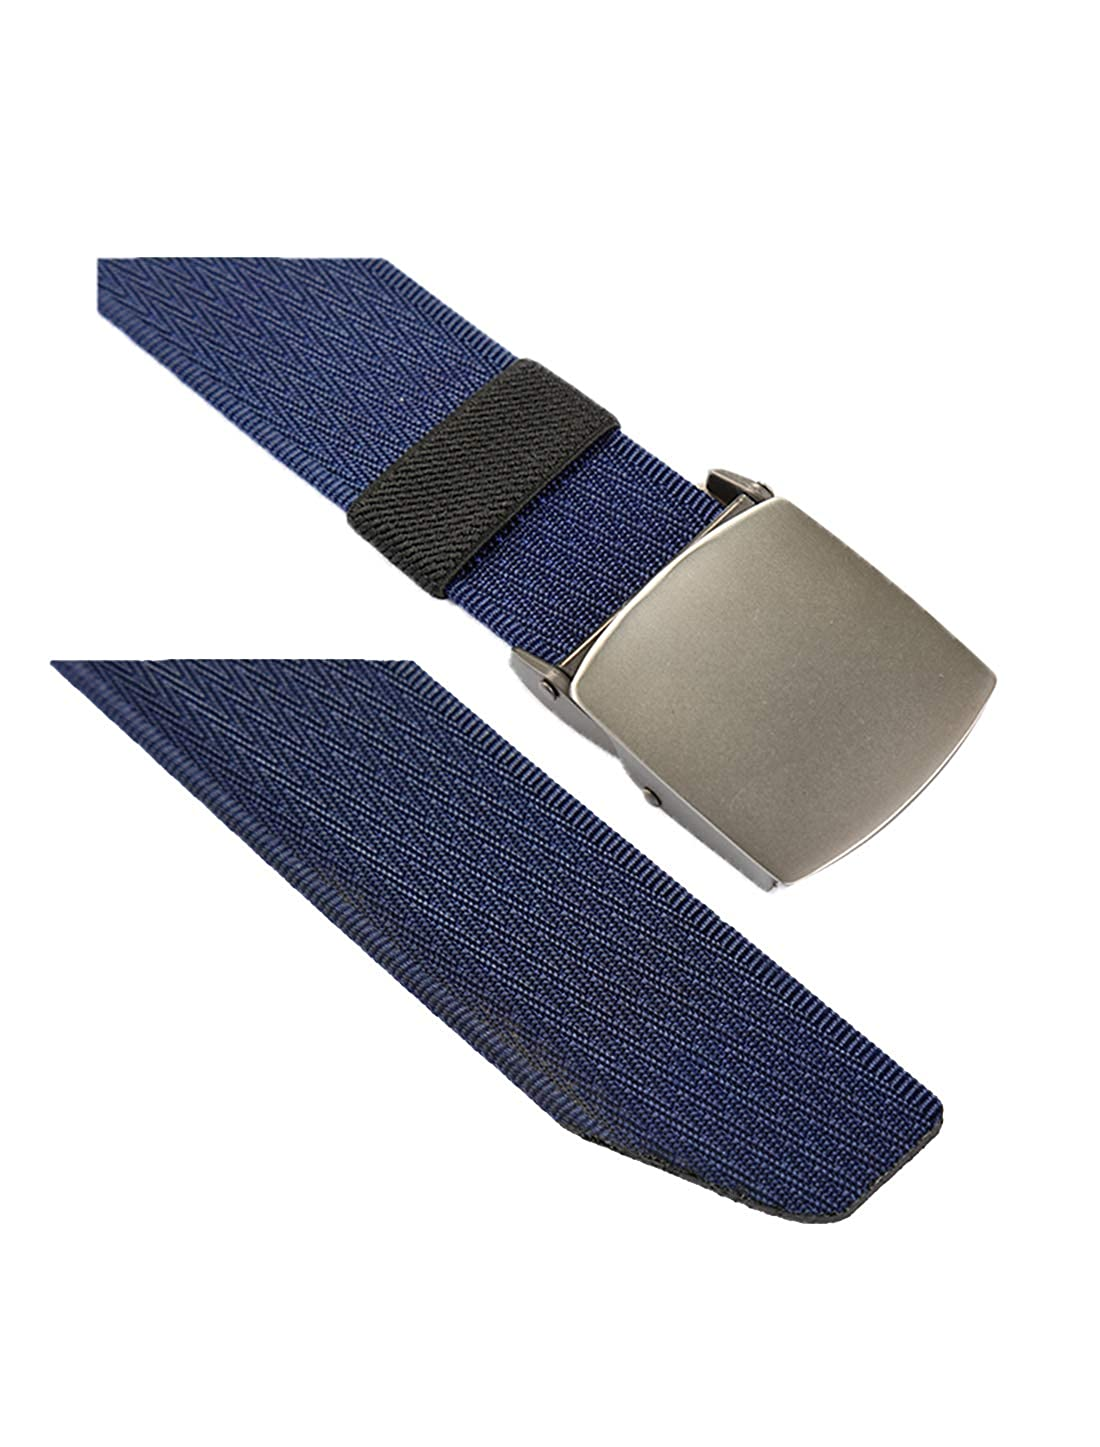 uxcell Unisex Adjustable Canvas Jacquard No Hole Slide Buckle Belt Width 1 1//2 Inches